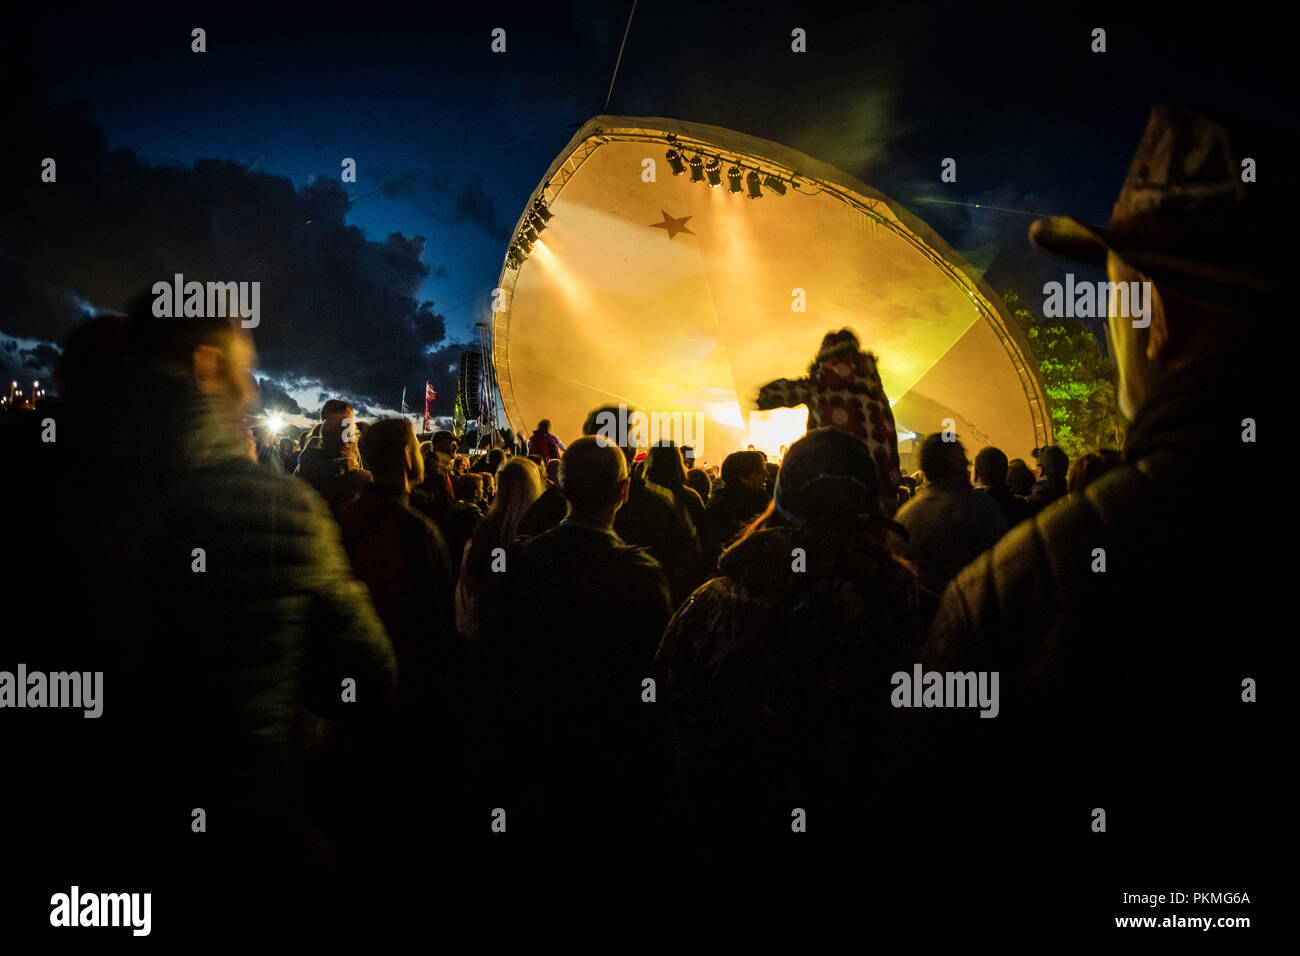 The audience enjoying the performers at the Big Tribute music festival, Wales's biggest event dedicated to tribute acts,  August Bank Holiday weekend,  Aberystwyth Wales UK Summer 2018 - Stock Image